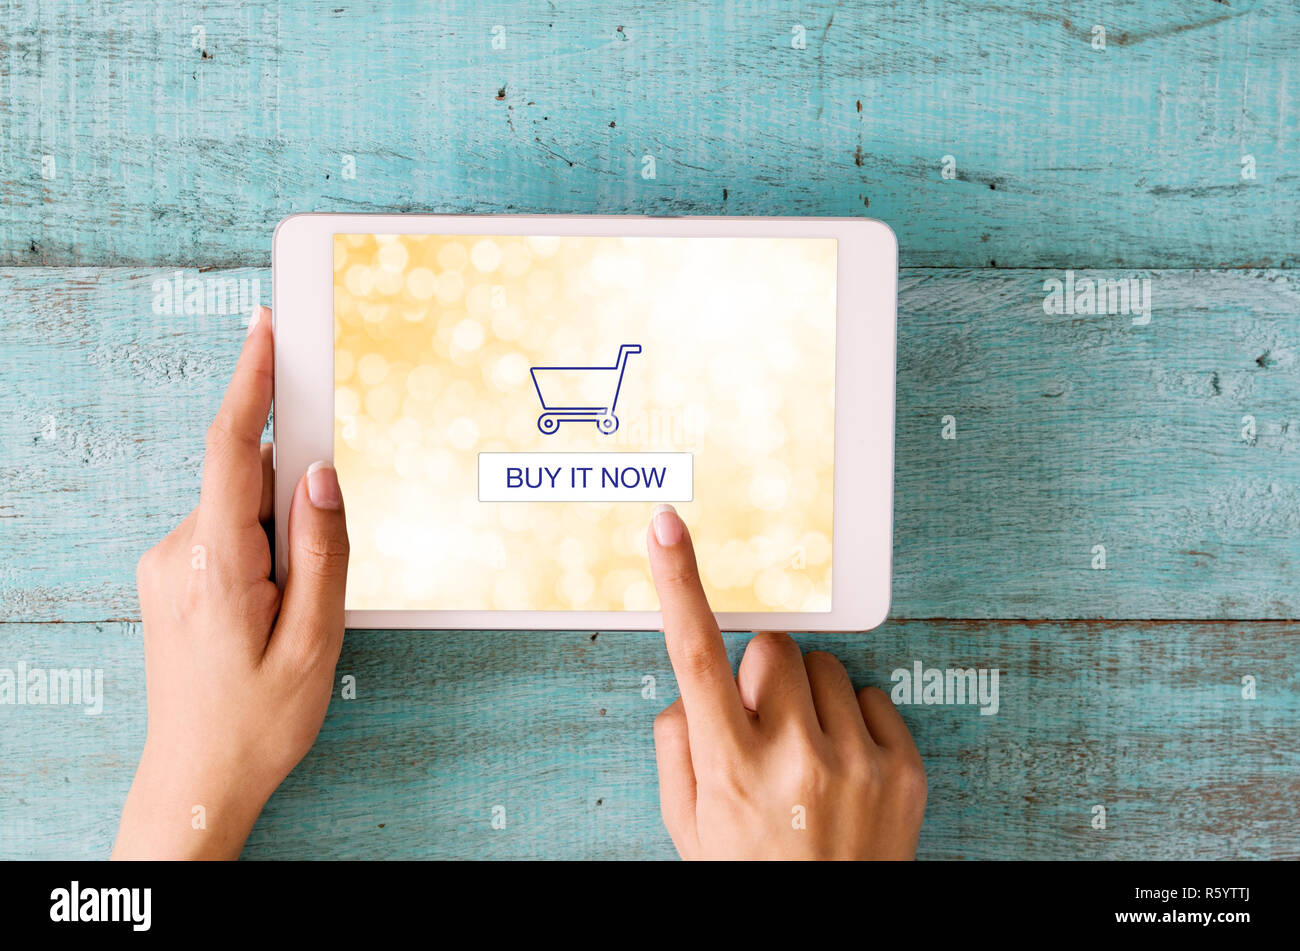 Shopping online concept. Close-up woman hands touching on digital tablet screen. - Stock Image